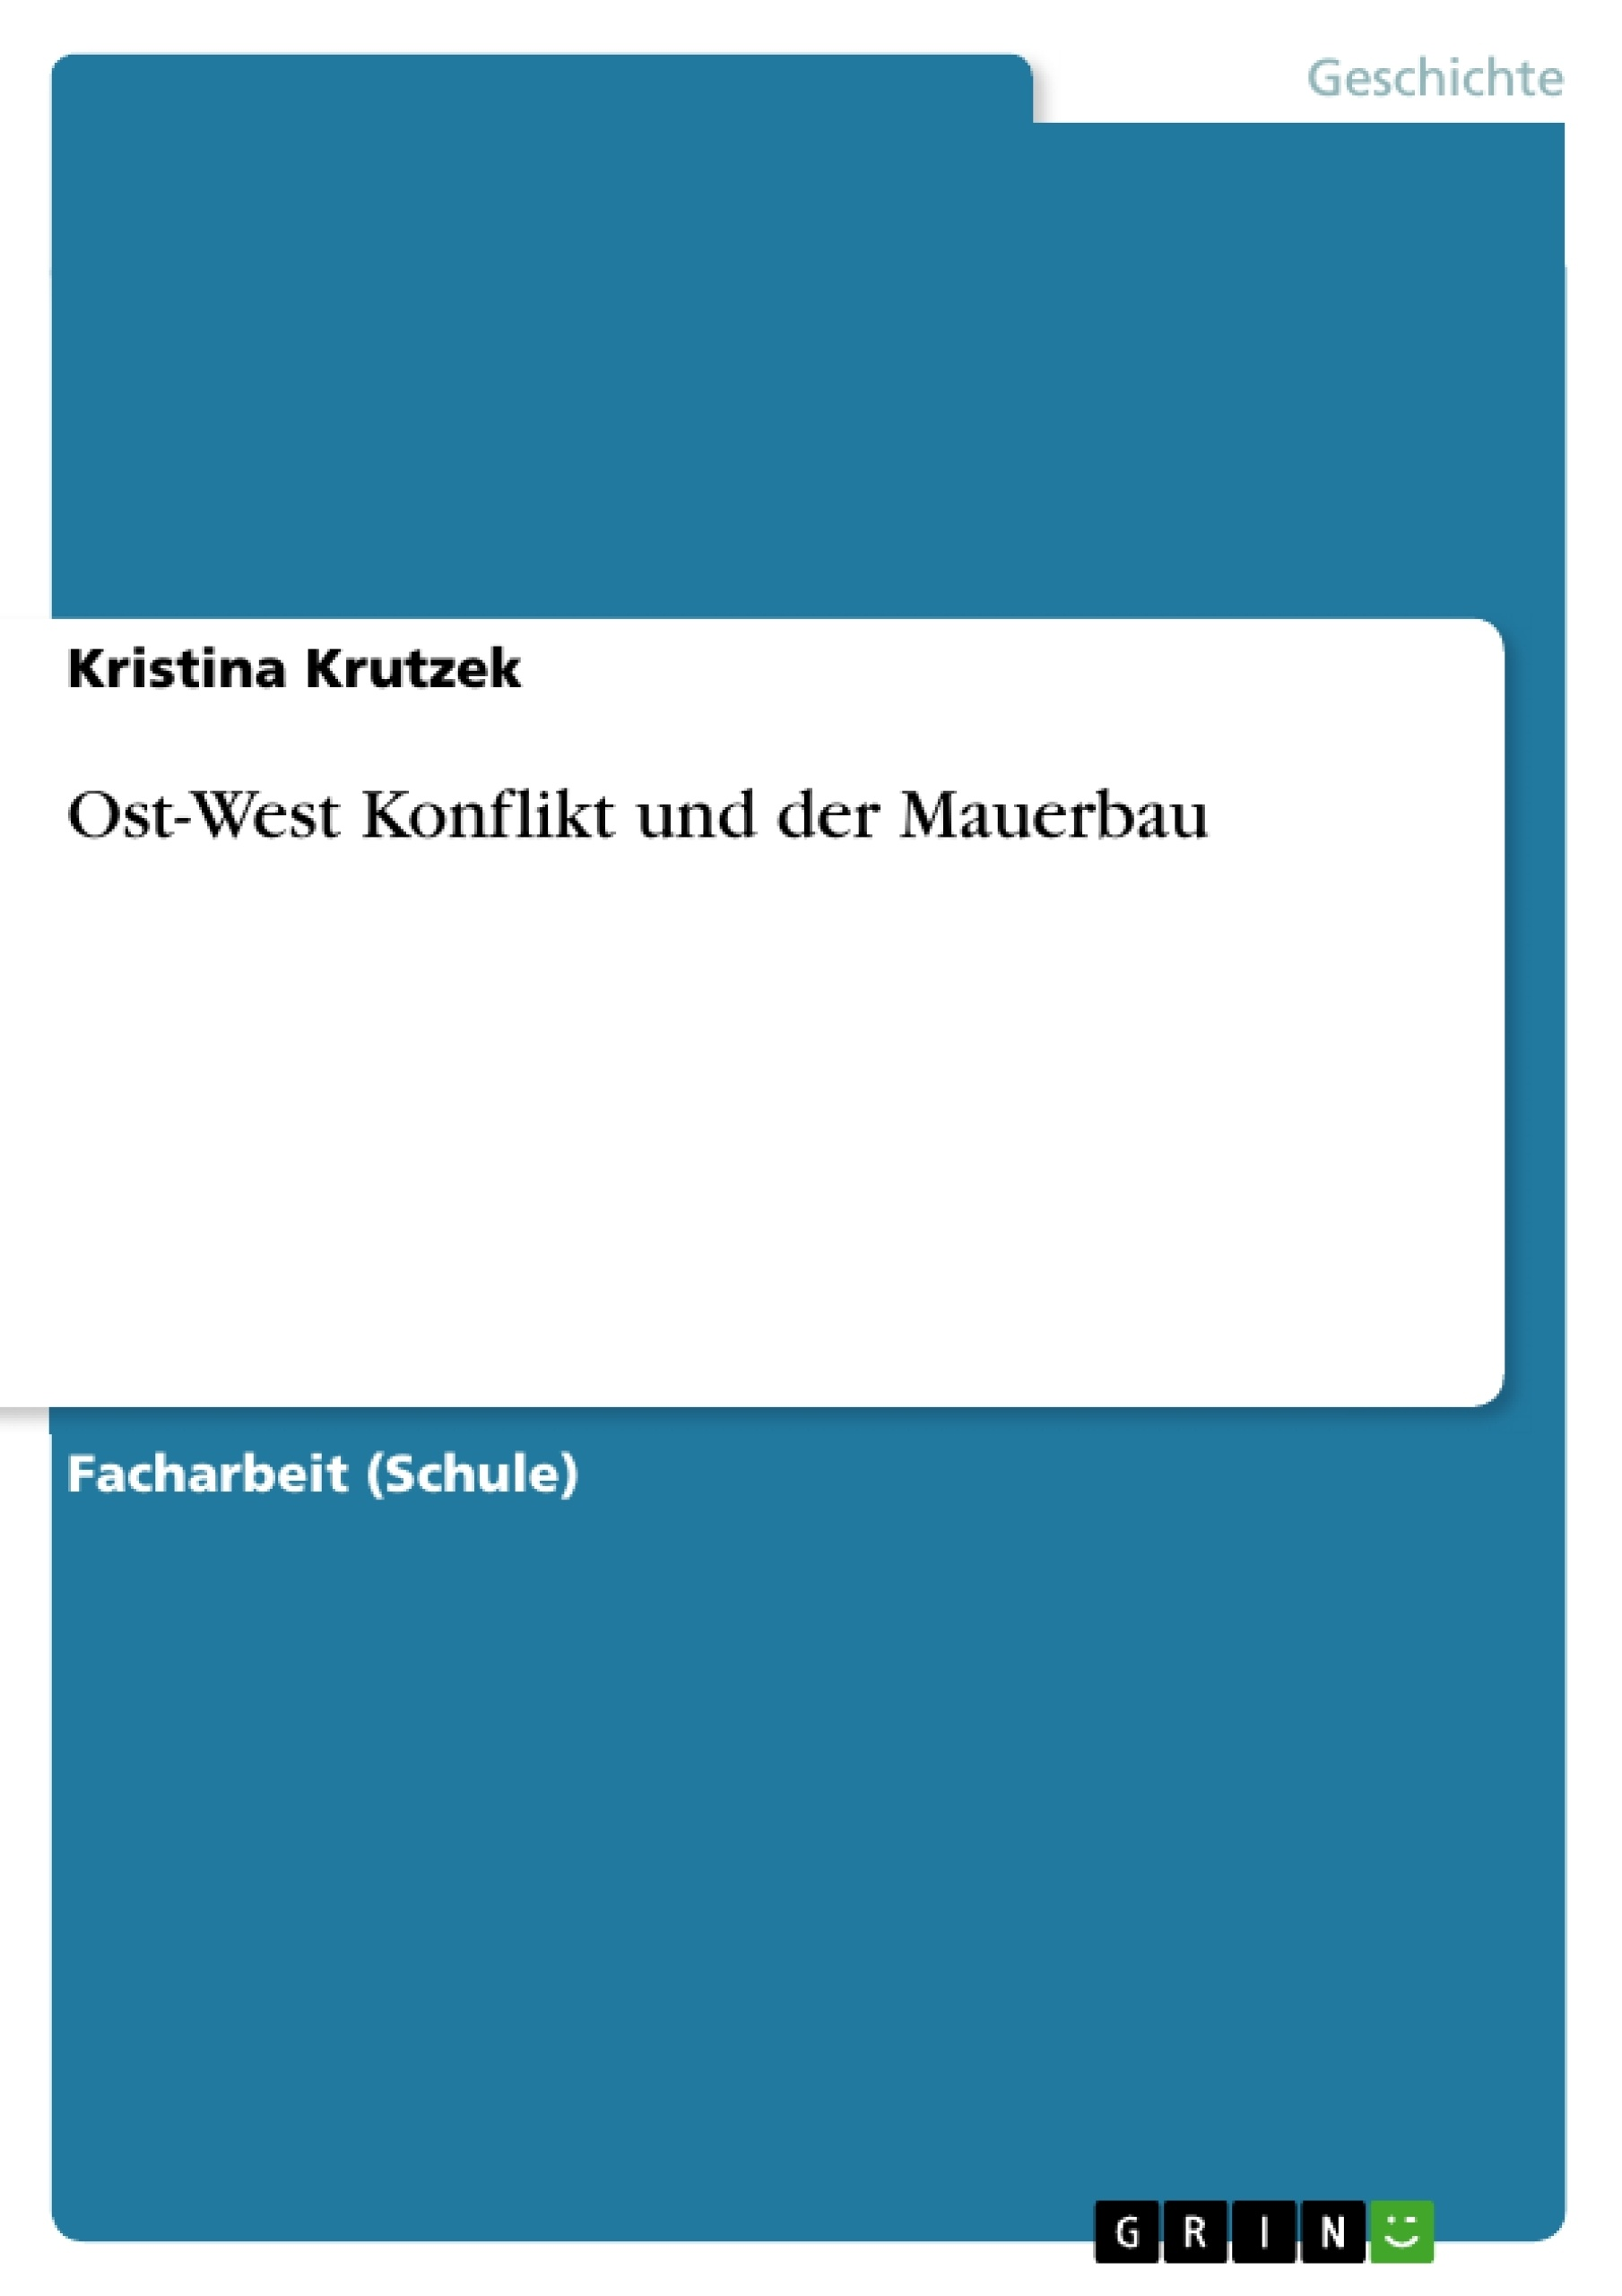 HTTP://EZZO-SKA.DE/EBOOK/BUY-NATURAL-LAW-IN-COURT-A-HISTORY-OF-LEGAL-THEORY-IN-PRACTICE/